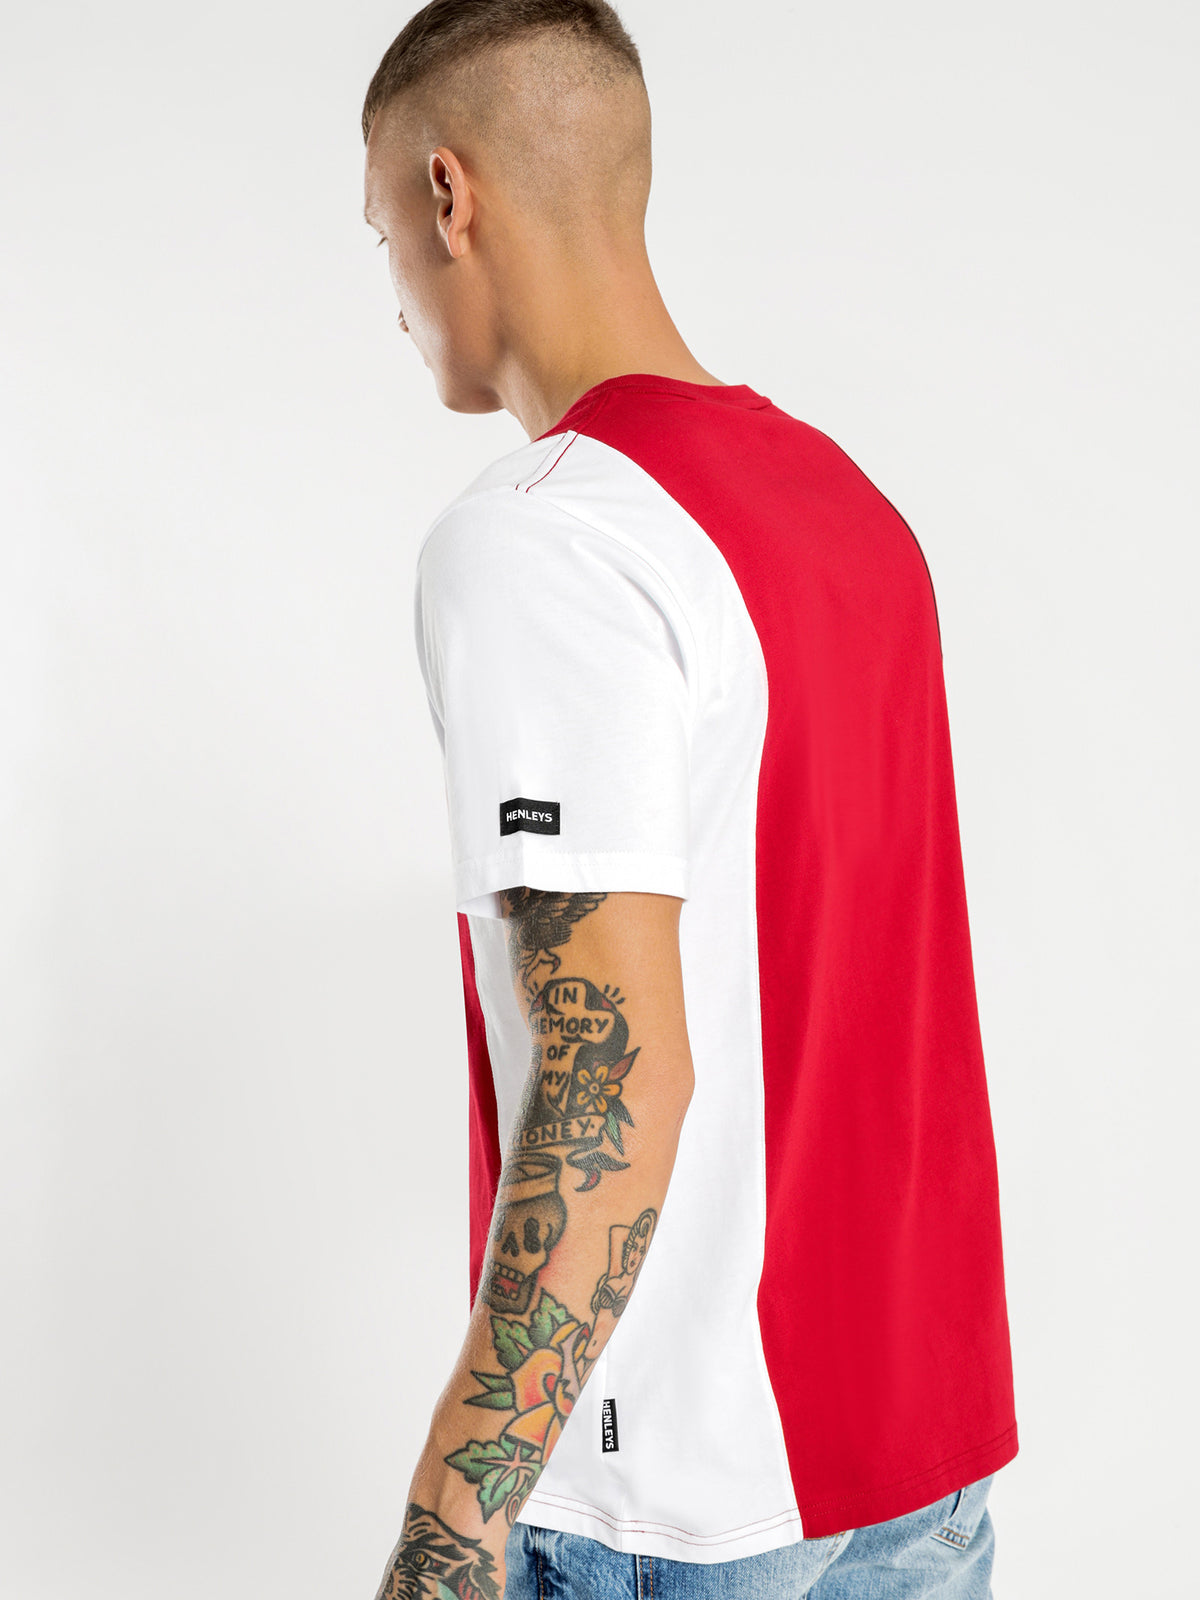 Roberts T-Shirt in Red White & Navy